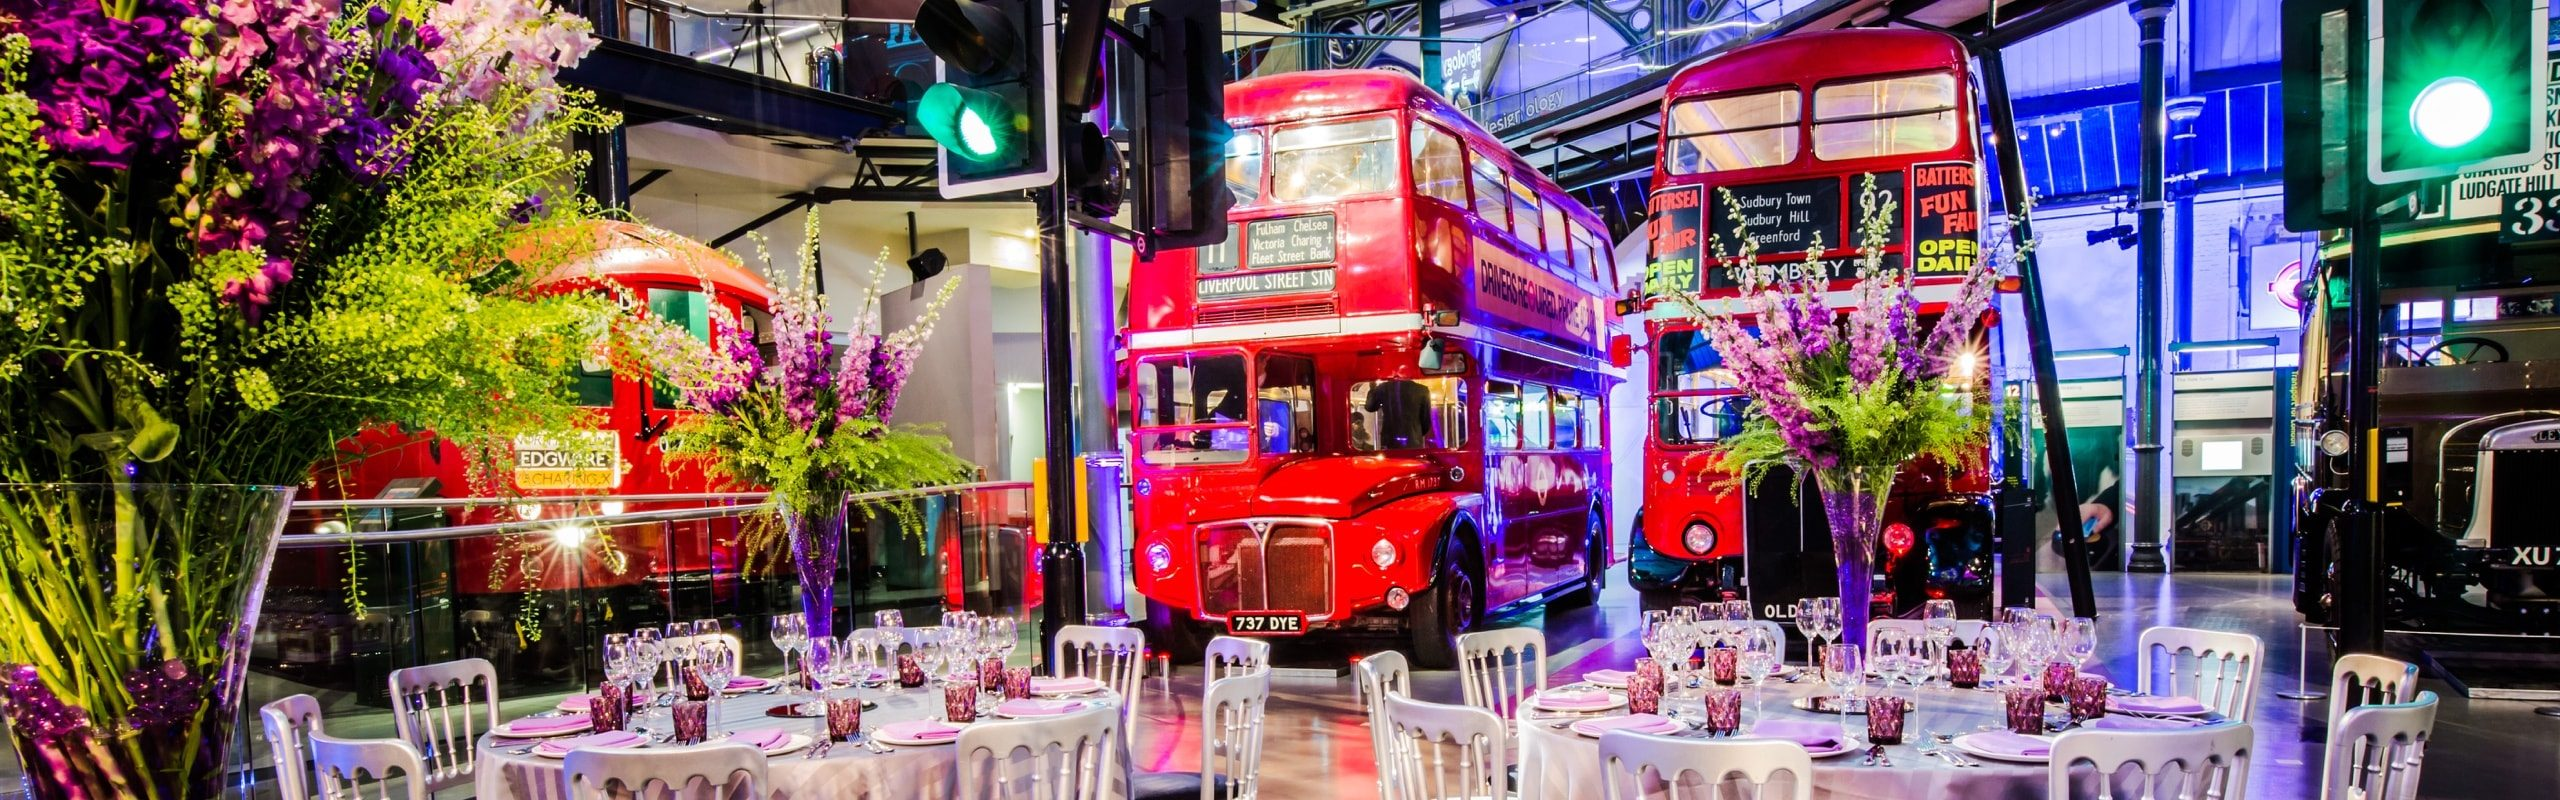 tables surrounded by red buses